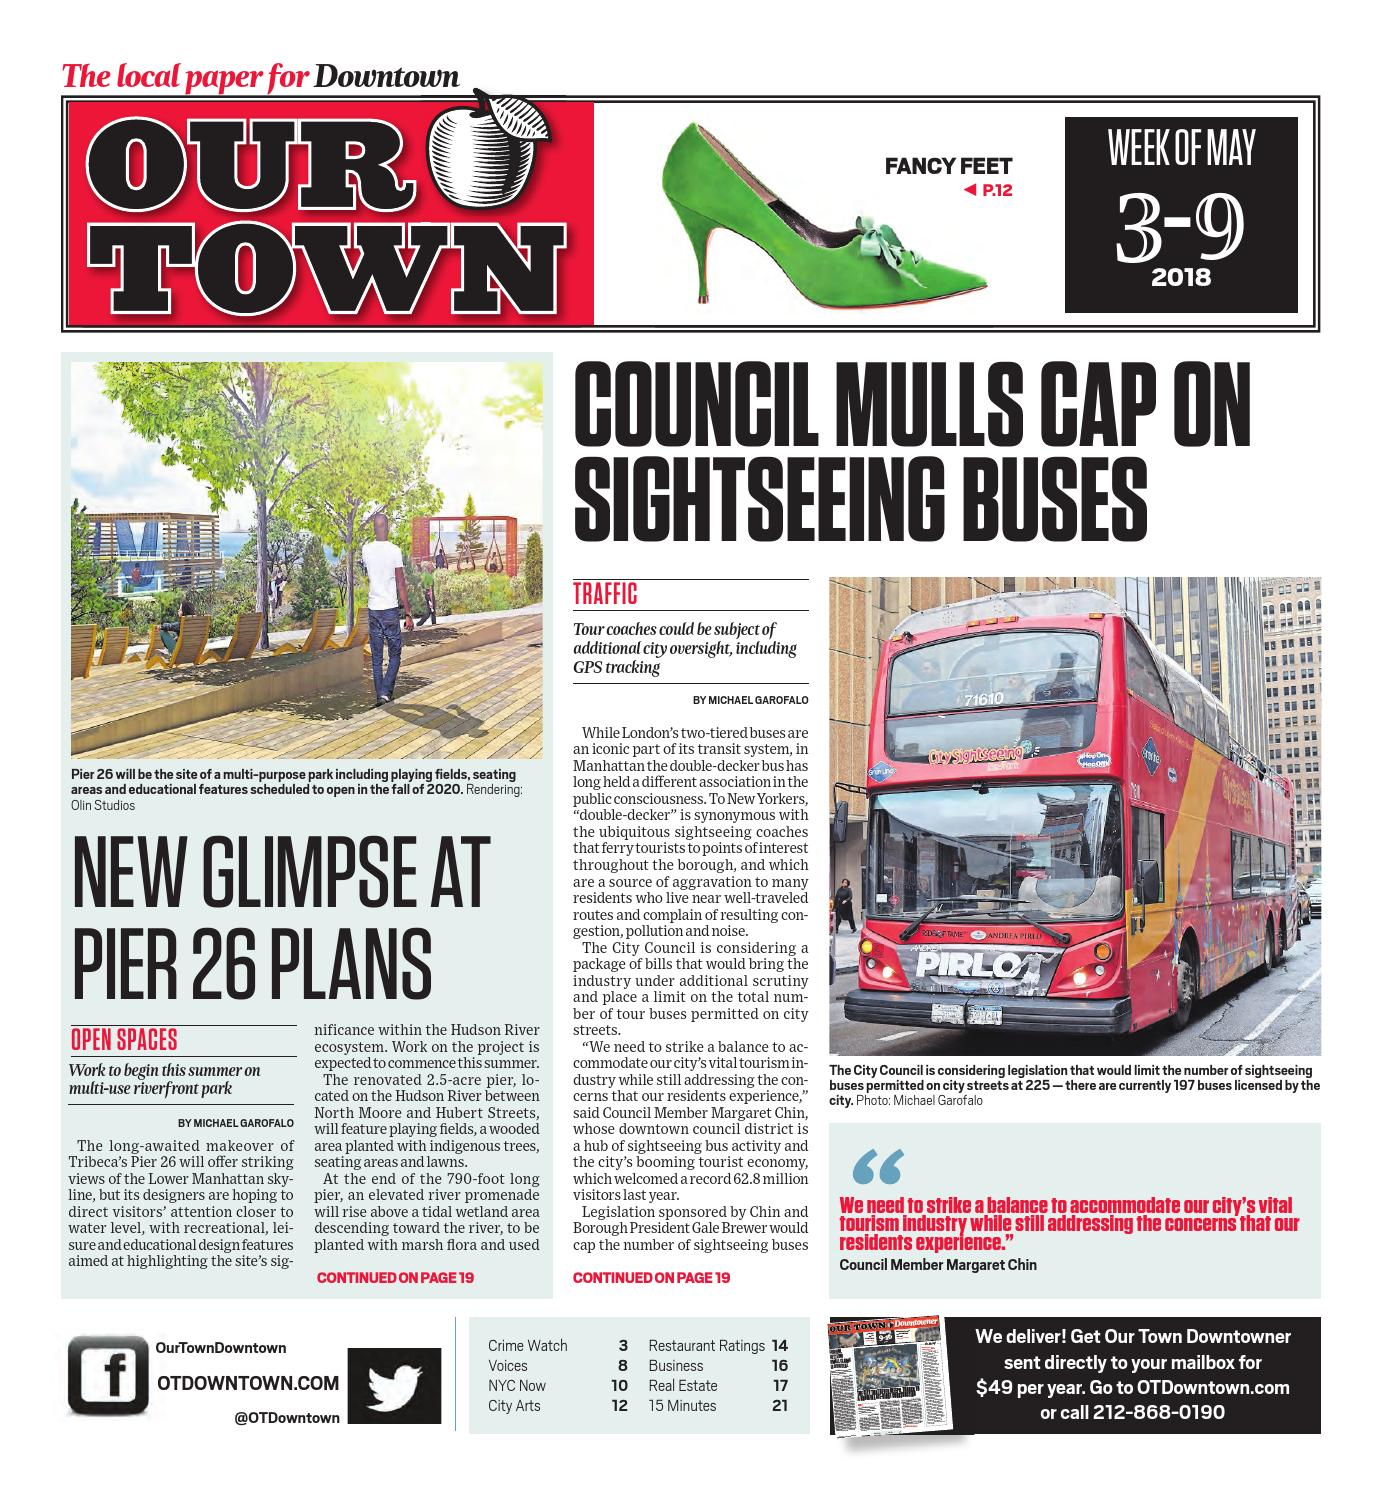 Our Town Downtown - May 3, 2018 by OurTown Downtown - issuu